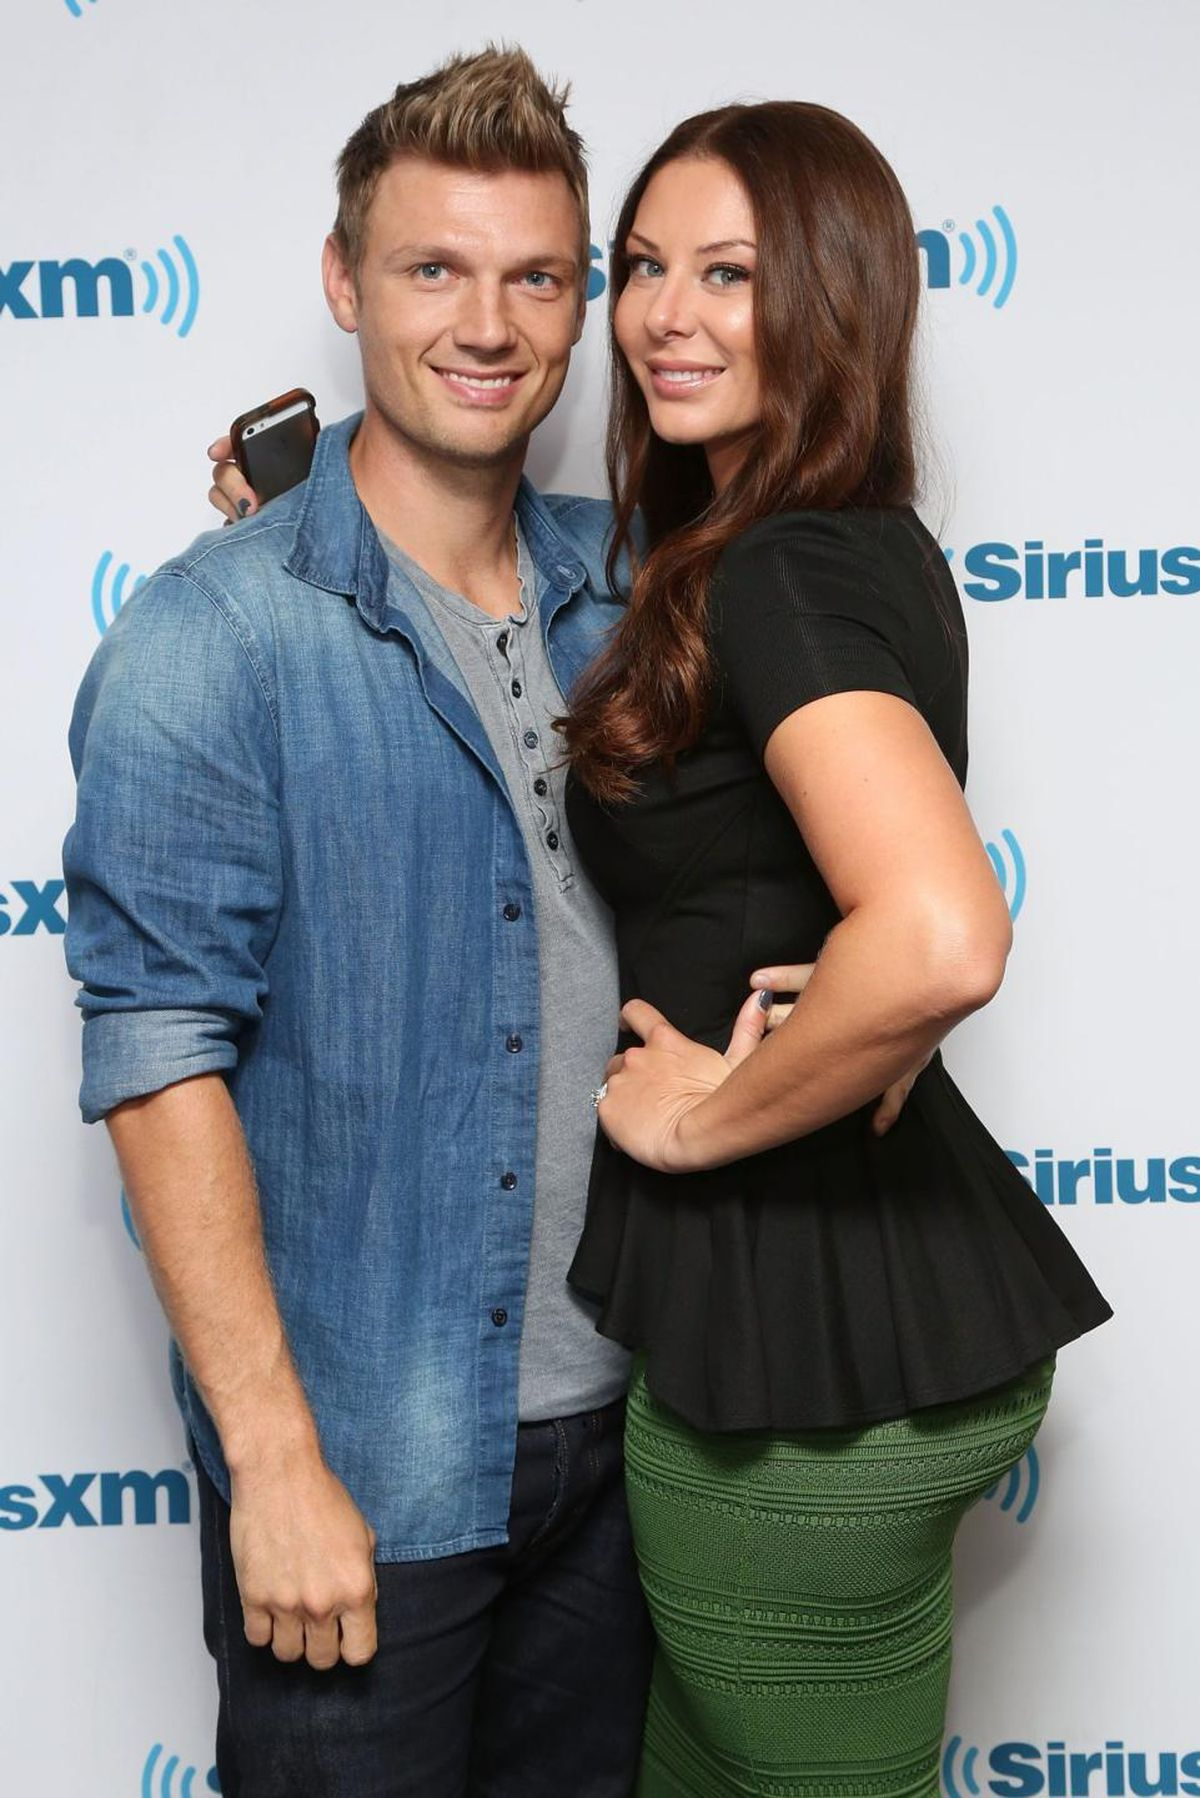 Nick Carter And Wife Expecting First Child Report NY